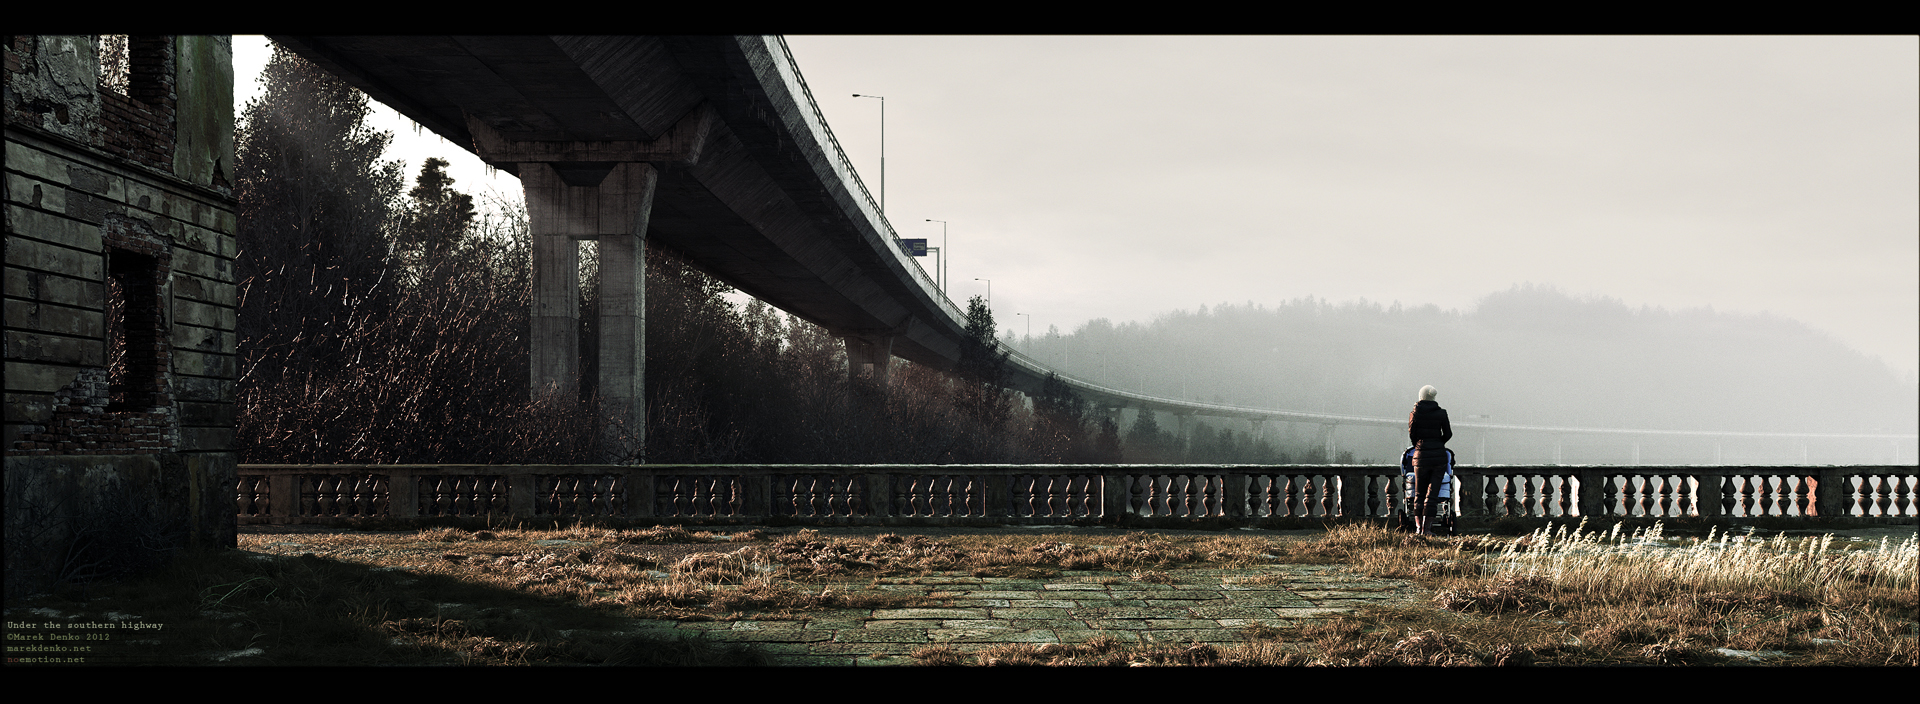 Marek Denko - Under The Southern Highway